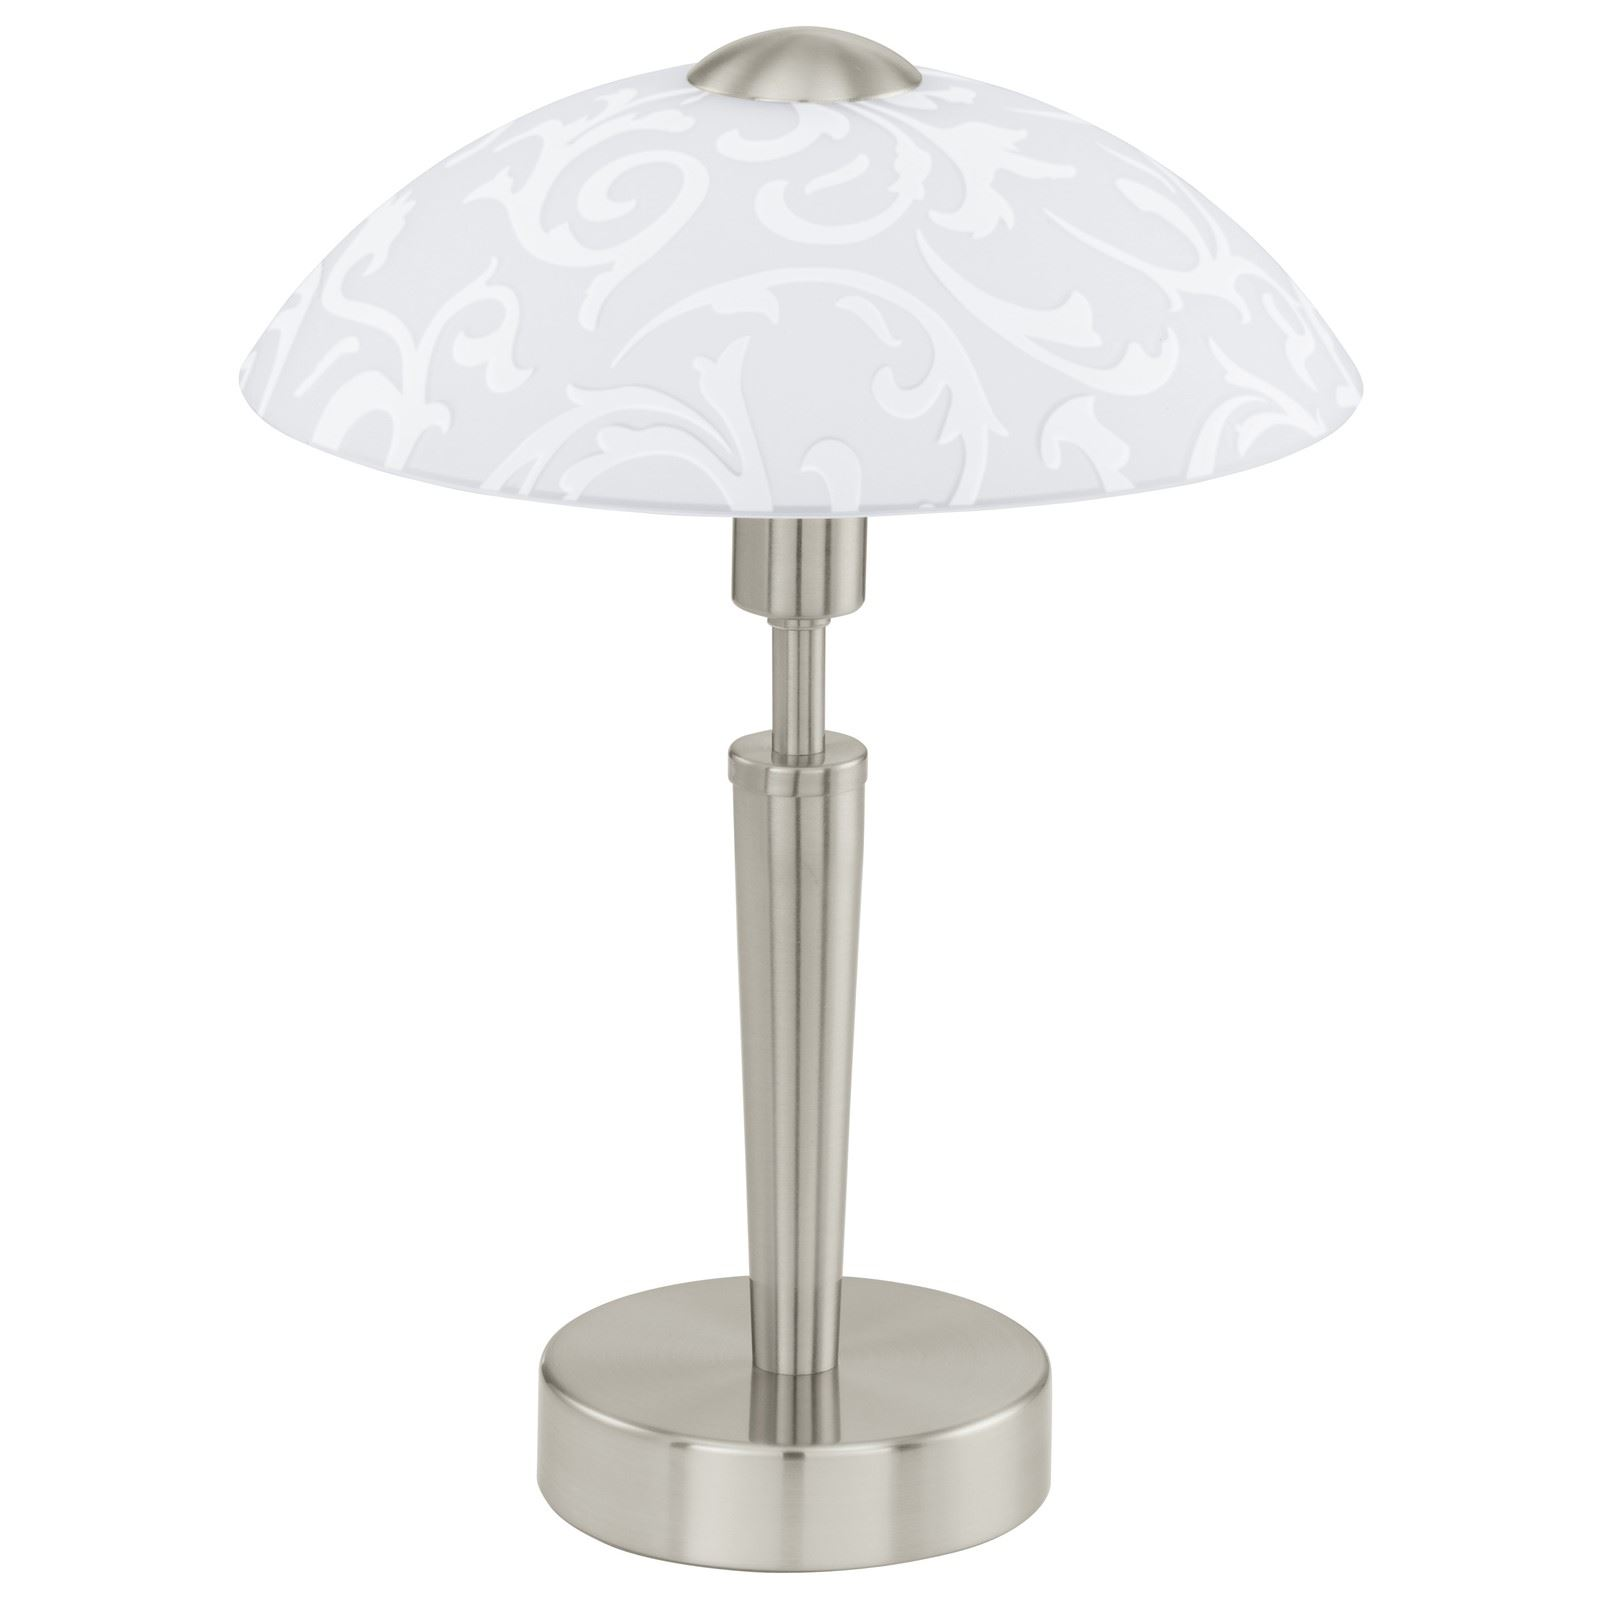 Solo Table Lamp 1 Light Touchdimmer Decorative White Shade